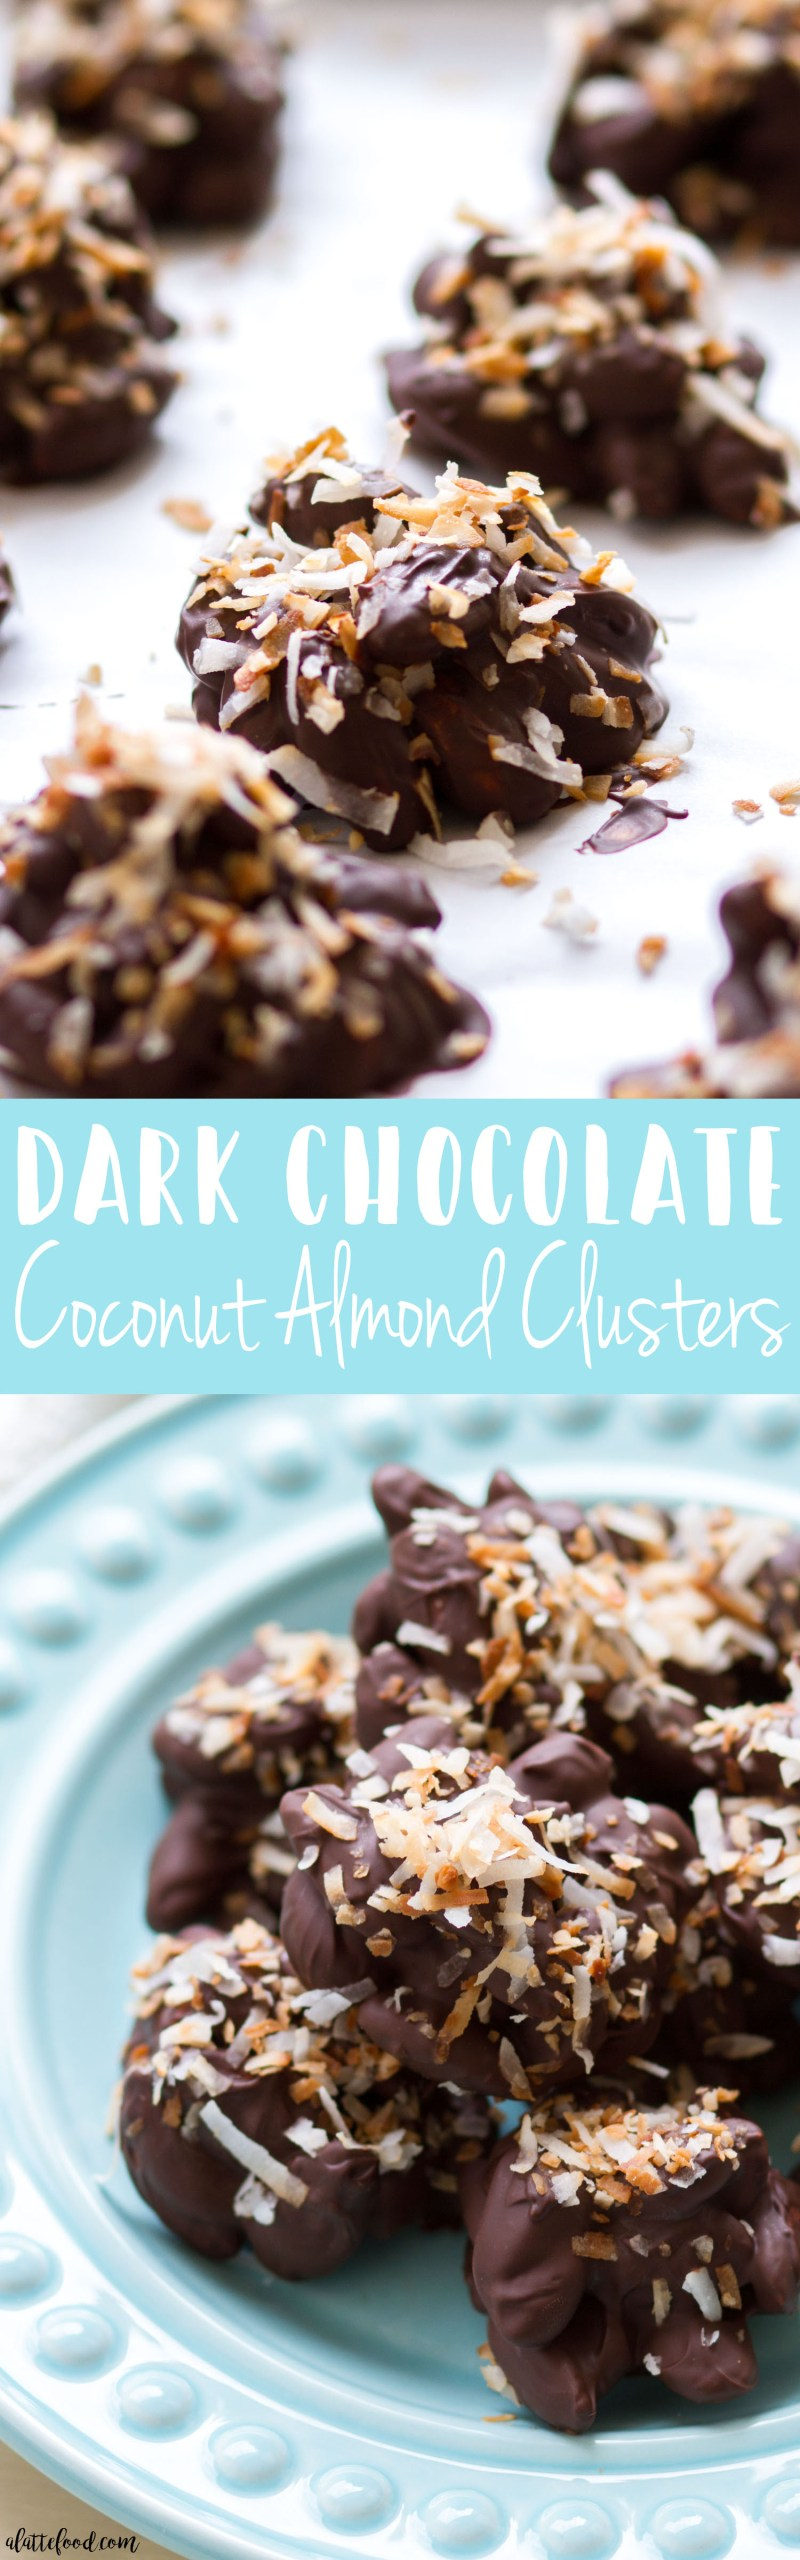 These homemade chocolate almond clusters are made with melted dark chocolate and toasted coconut to make an irresistible quick and easy snack or sweet treat! These Coconut Dark Chocolate  Almond Clusters are super simple to make (as you can see in a step-by-step video below), and a total crowd pleaser! coconut, almond clusters, chocolate covered almonds